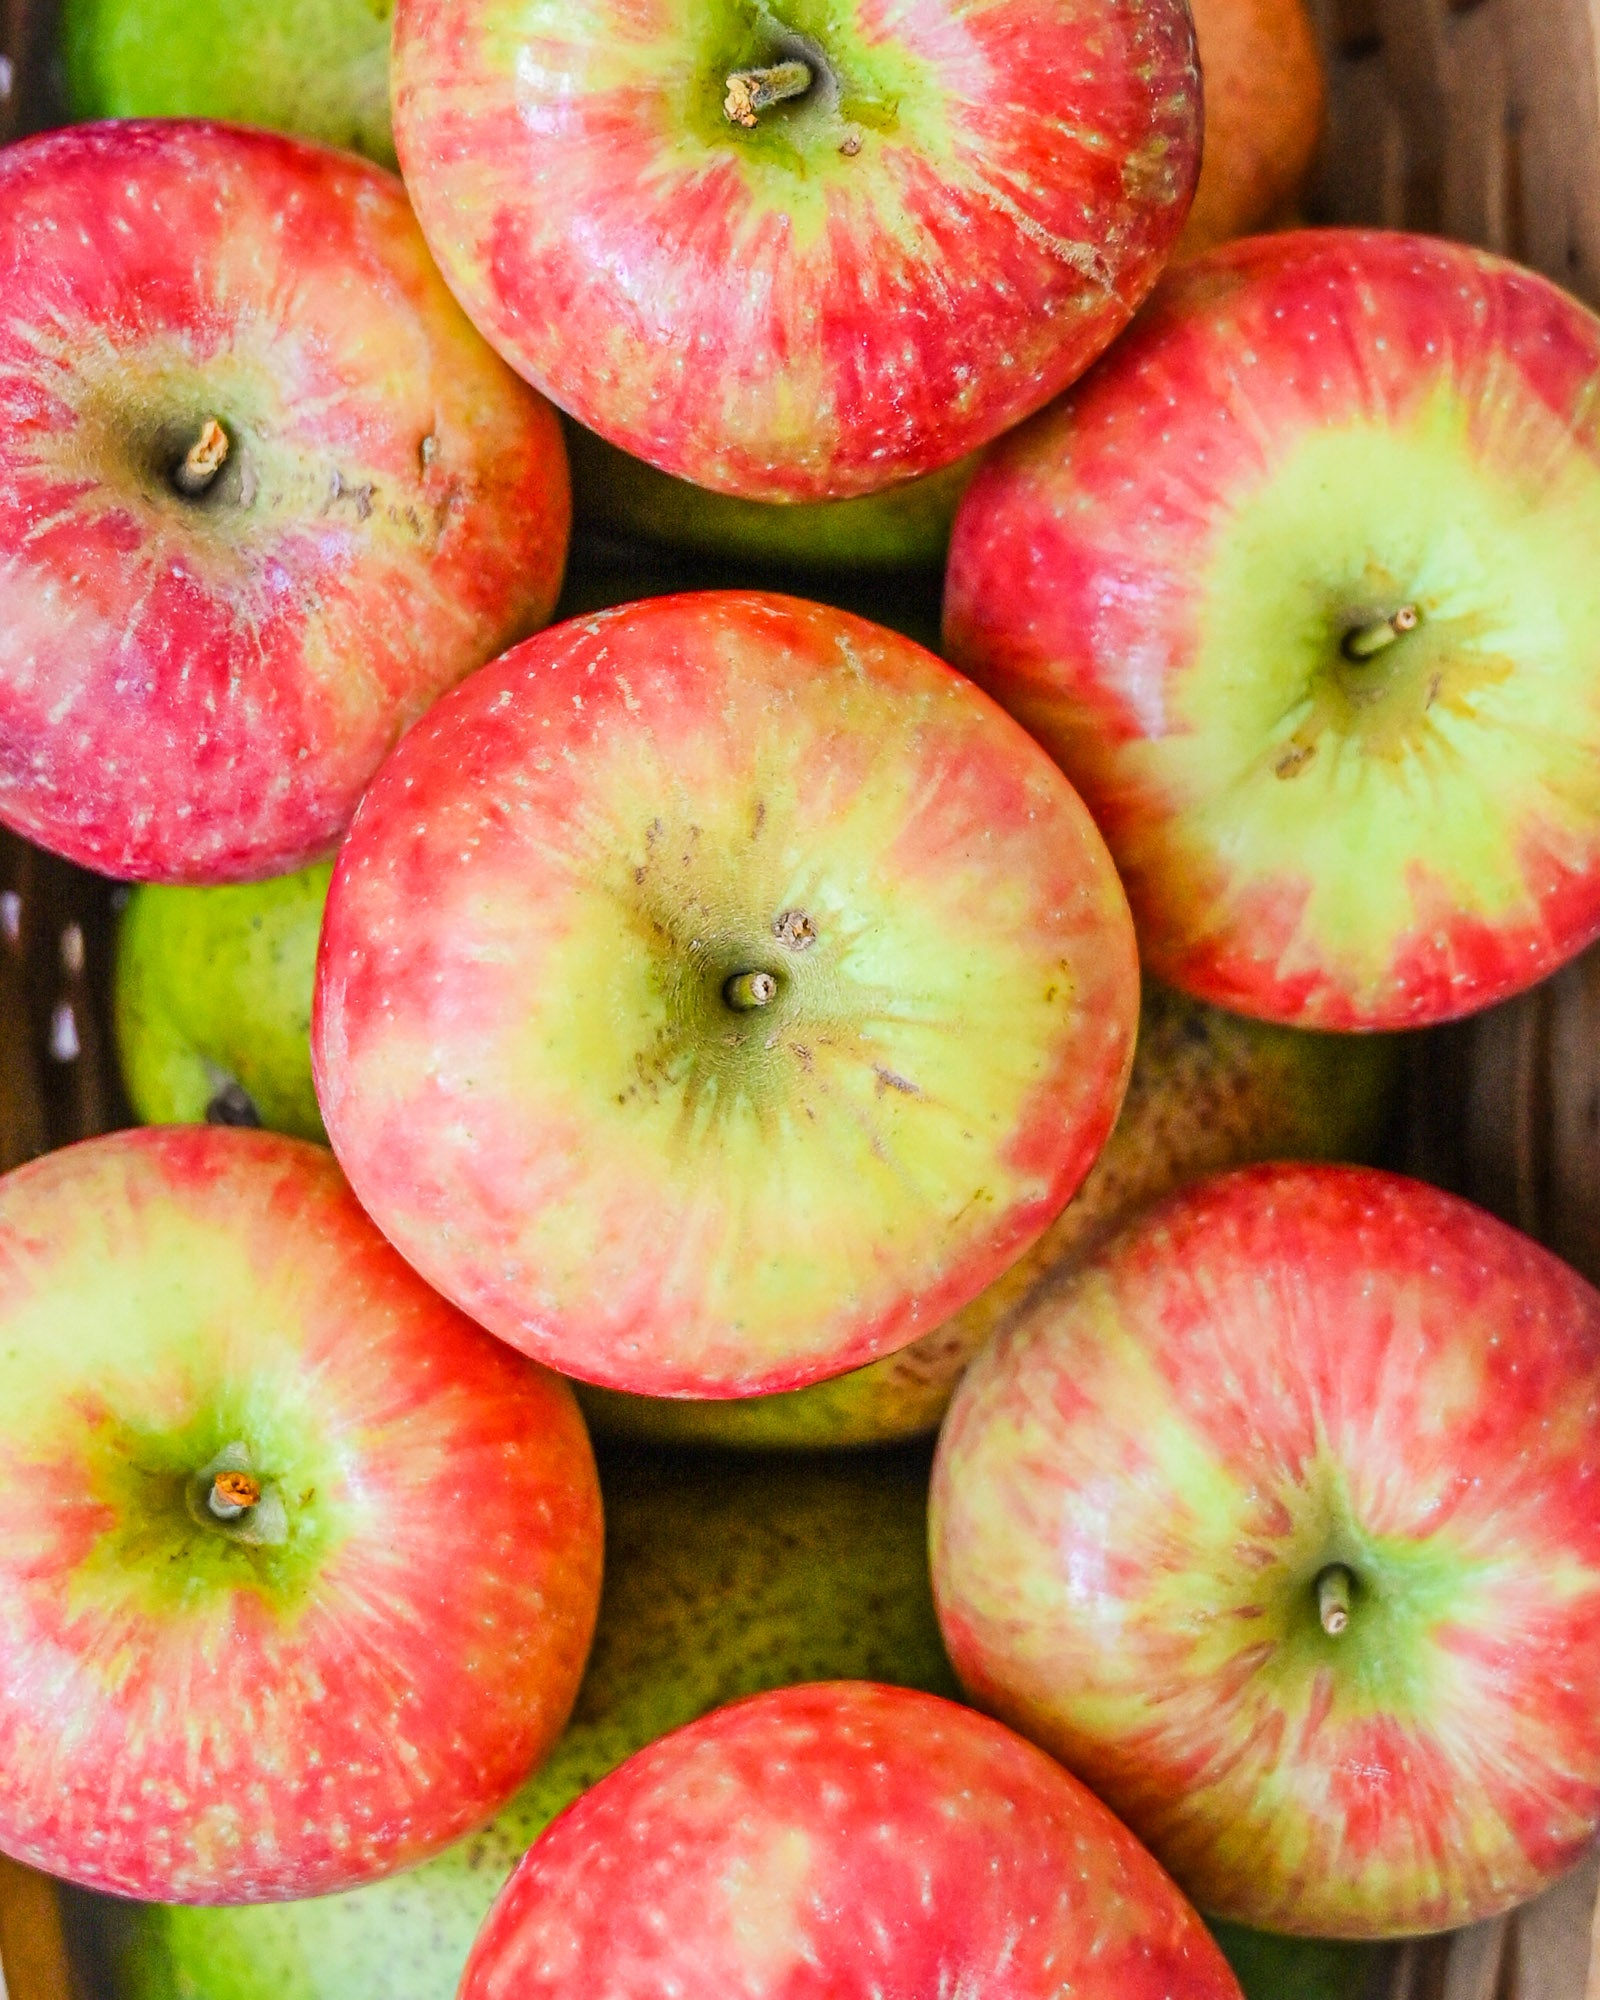 Are apples safe for dogs?